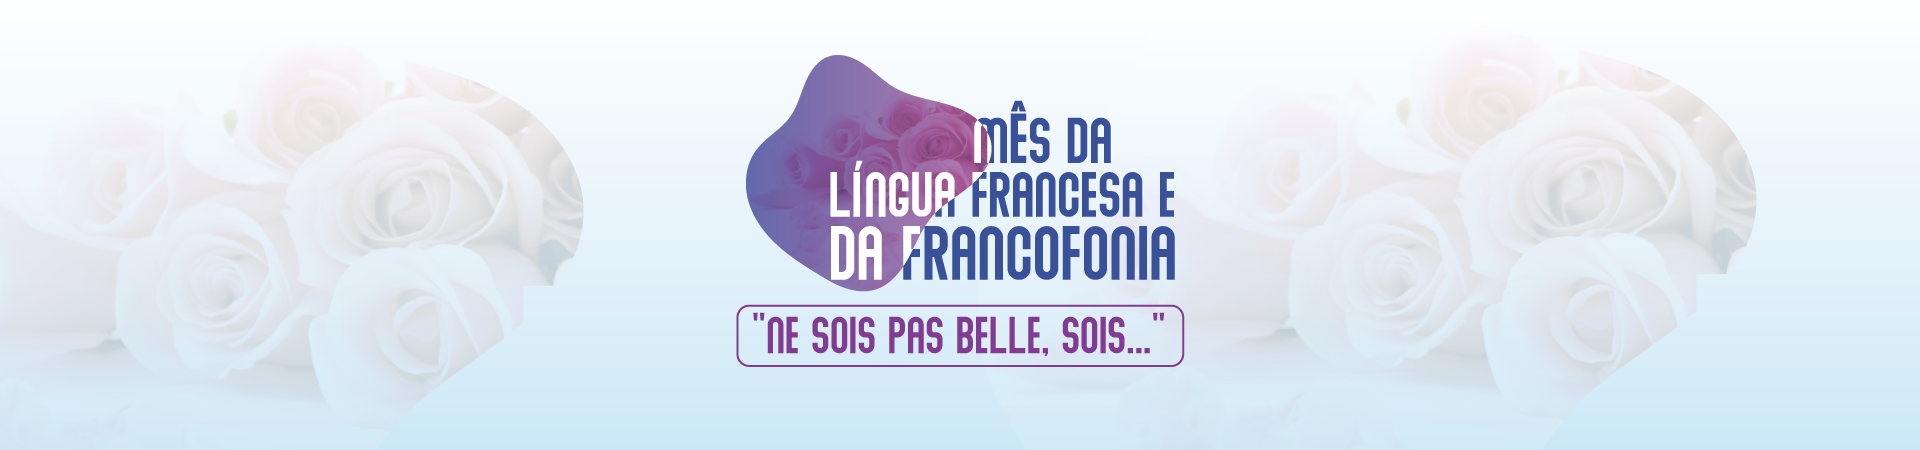 banner-site-francfonia-2019.png